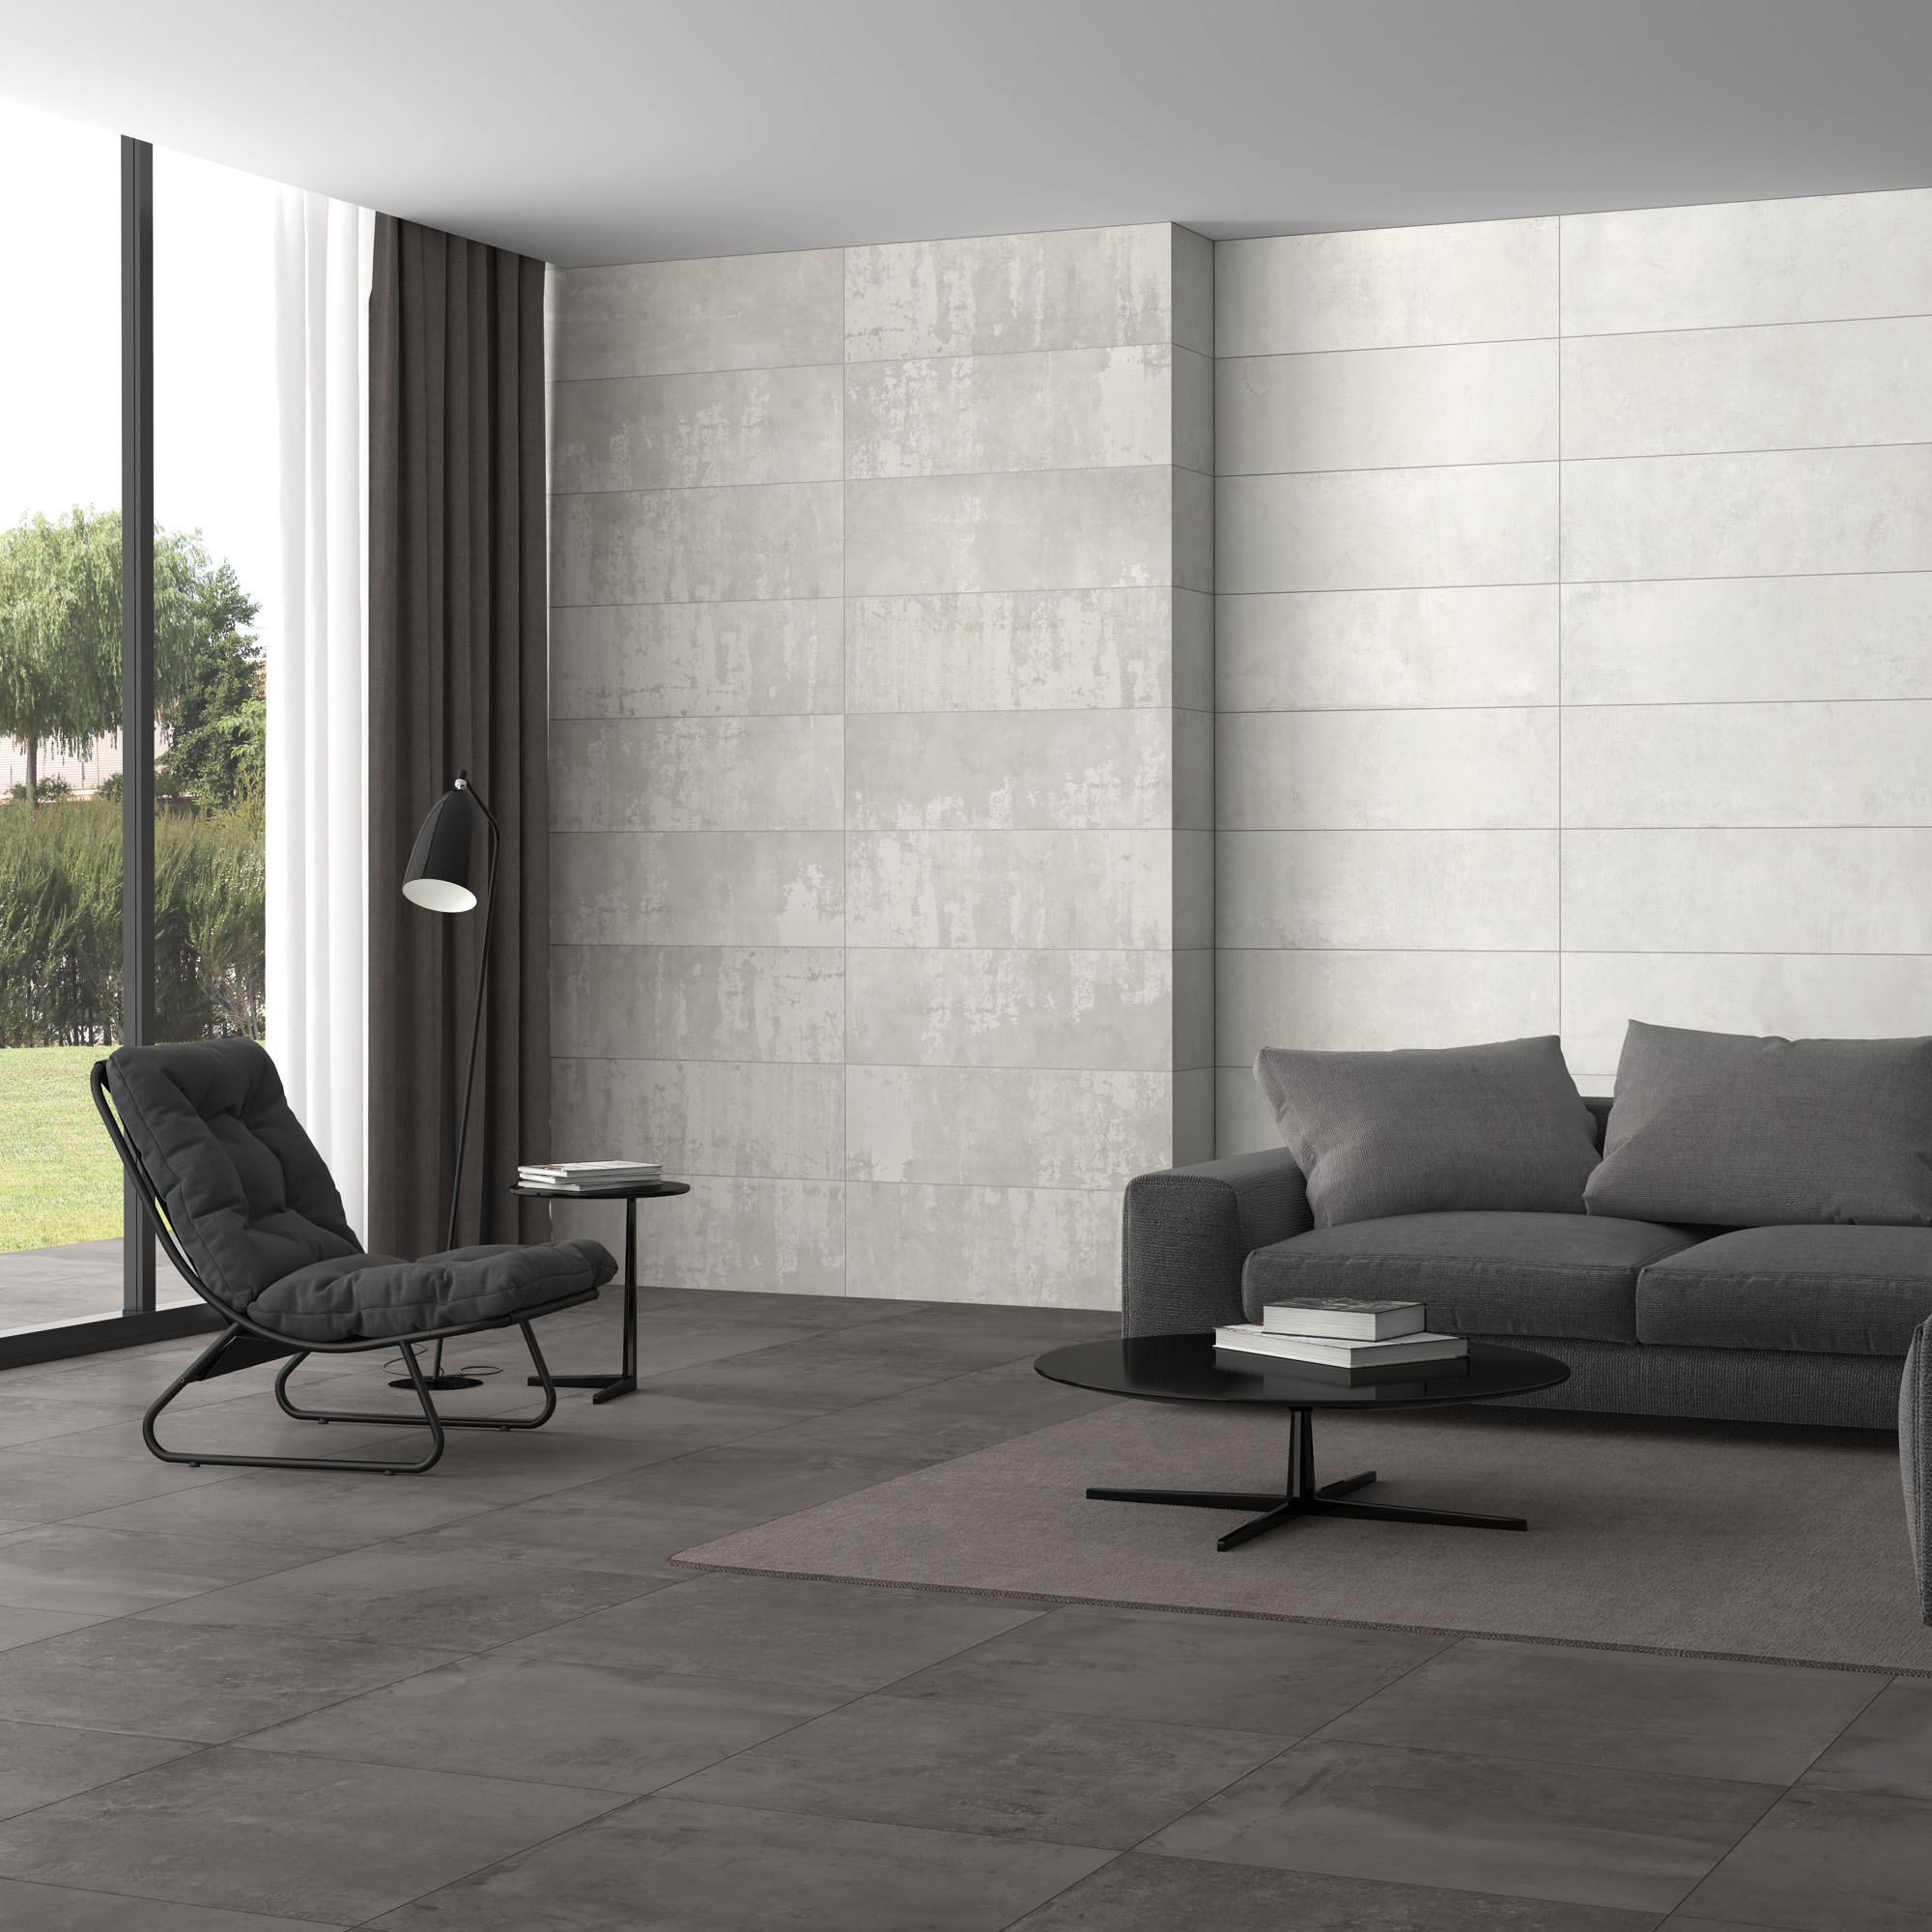 Plaster White + Decor Grey_Sala amb